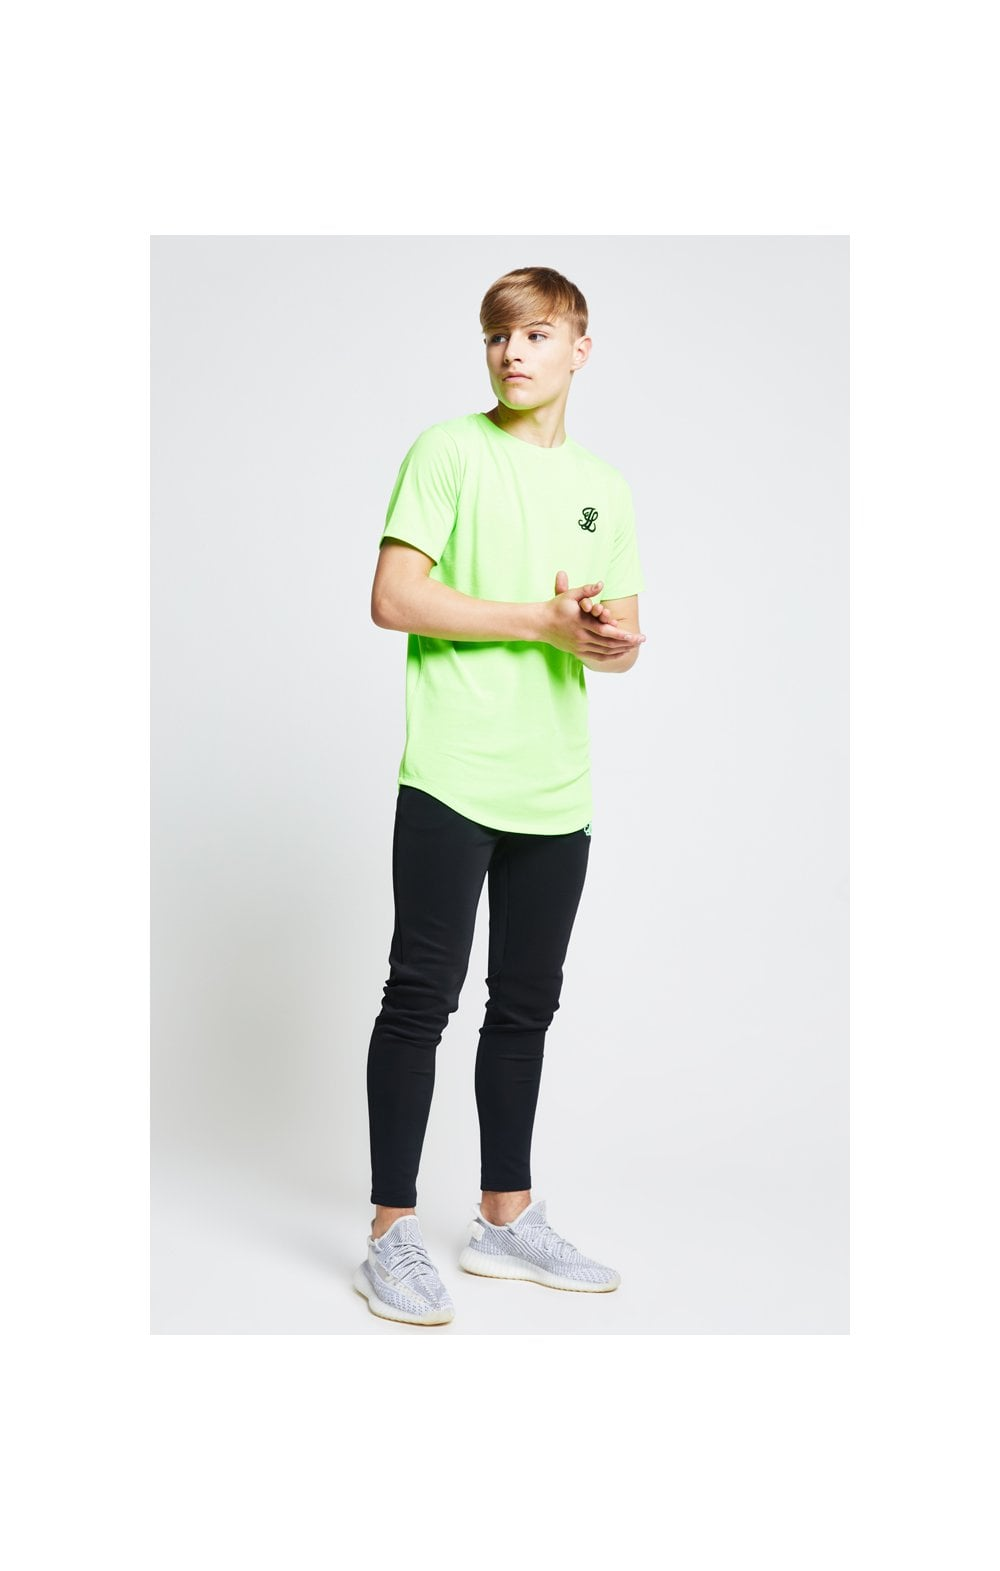 Illusive London S/S Taped Tee – Neon Green (1)